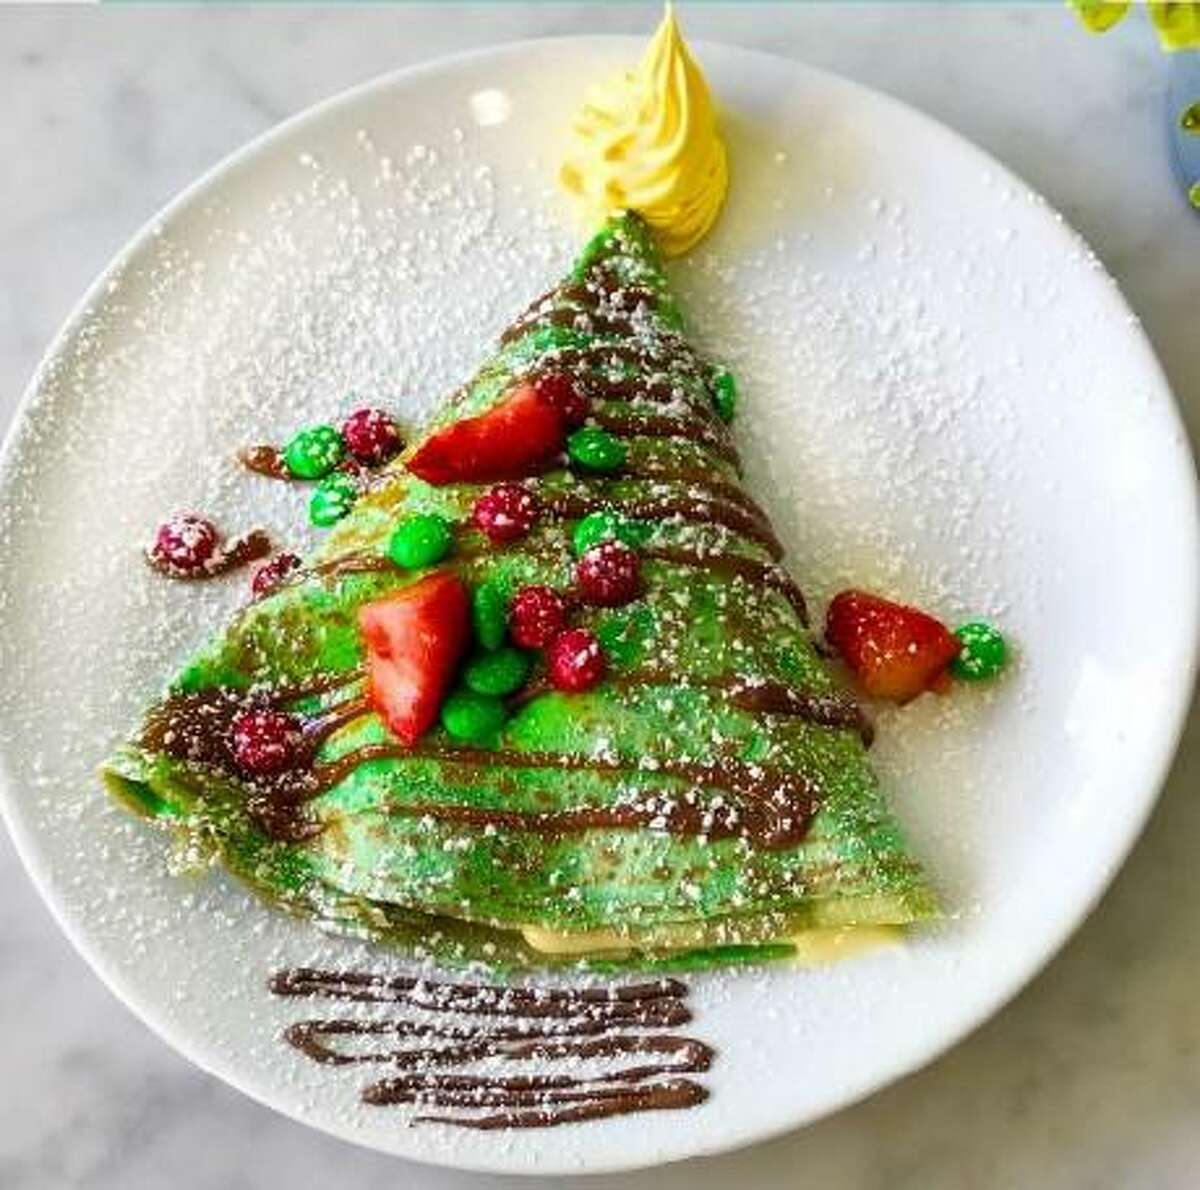 Eating at local restaurants and eateries helps support the Houston economy and create jobs. Right now, Sweet Paris Creperie and Cafe is serving The Grinch crepe.